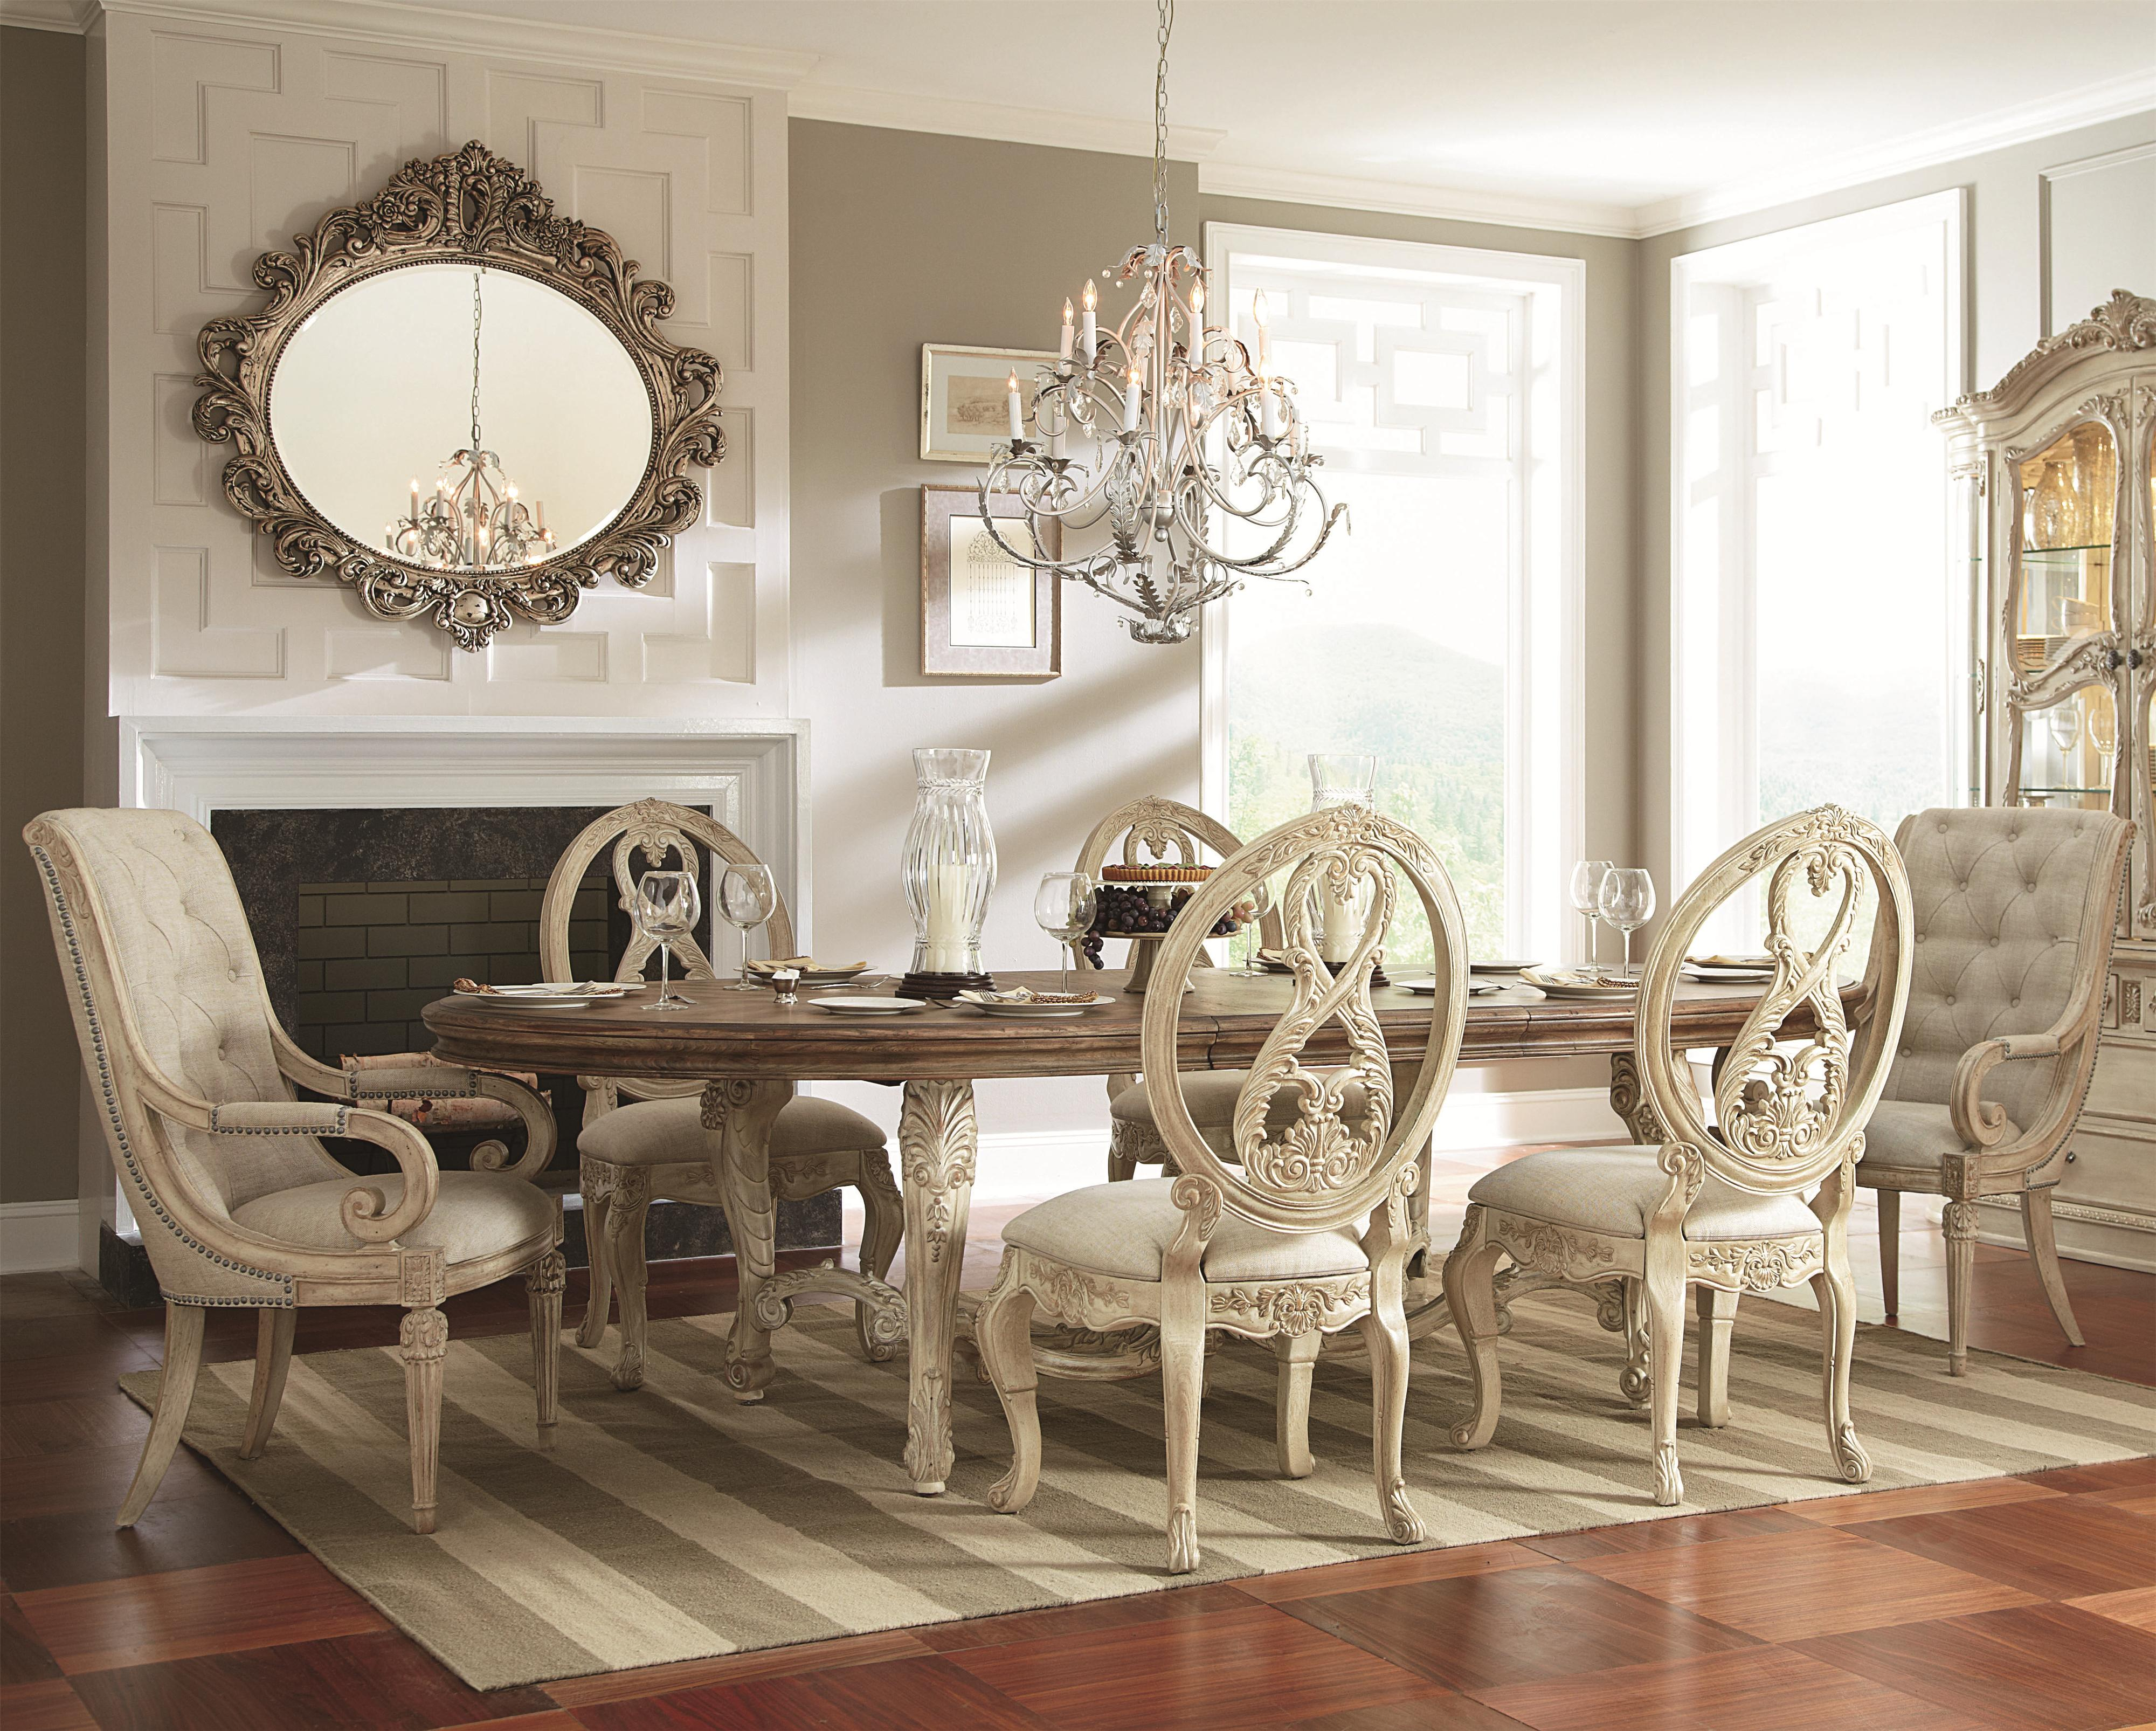 American Drew Jessica McClintock Home - The Boutique Collection 7 Piece Dining Table Set - Item Number: 217-746R+2x637W+4x622W